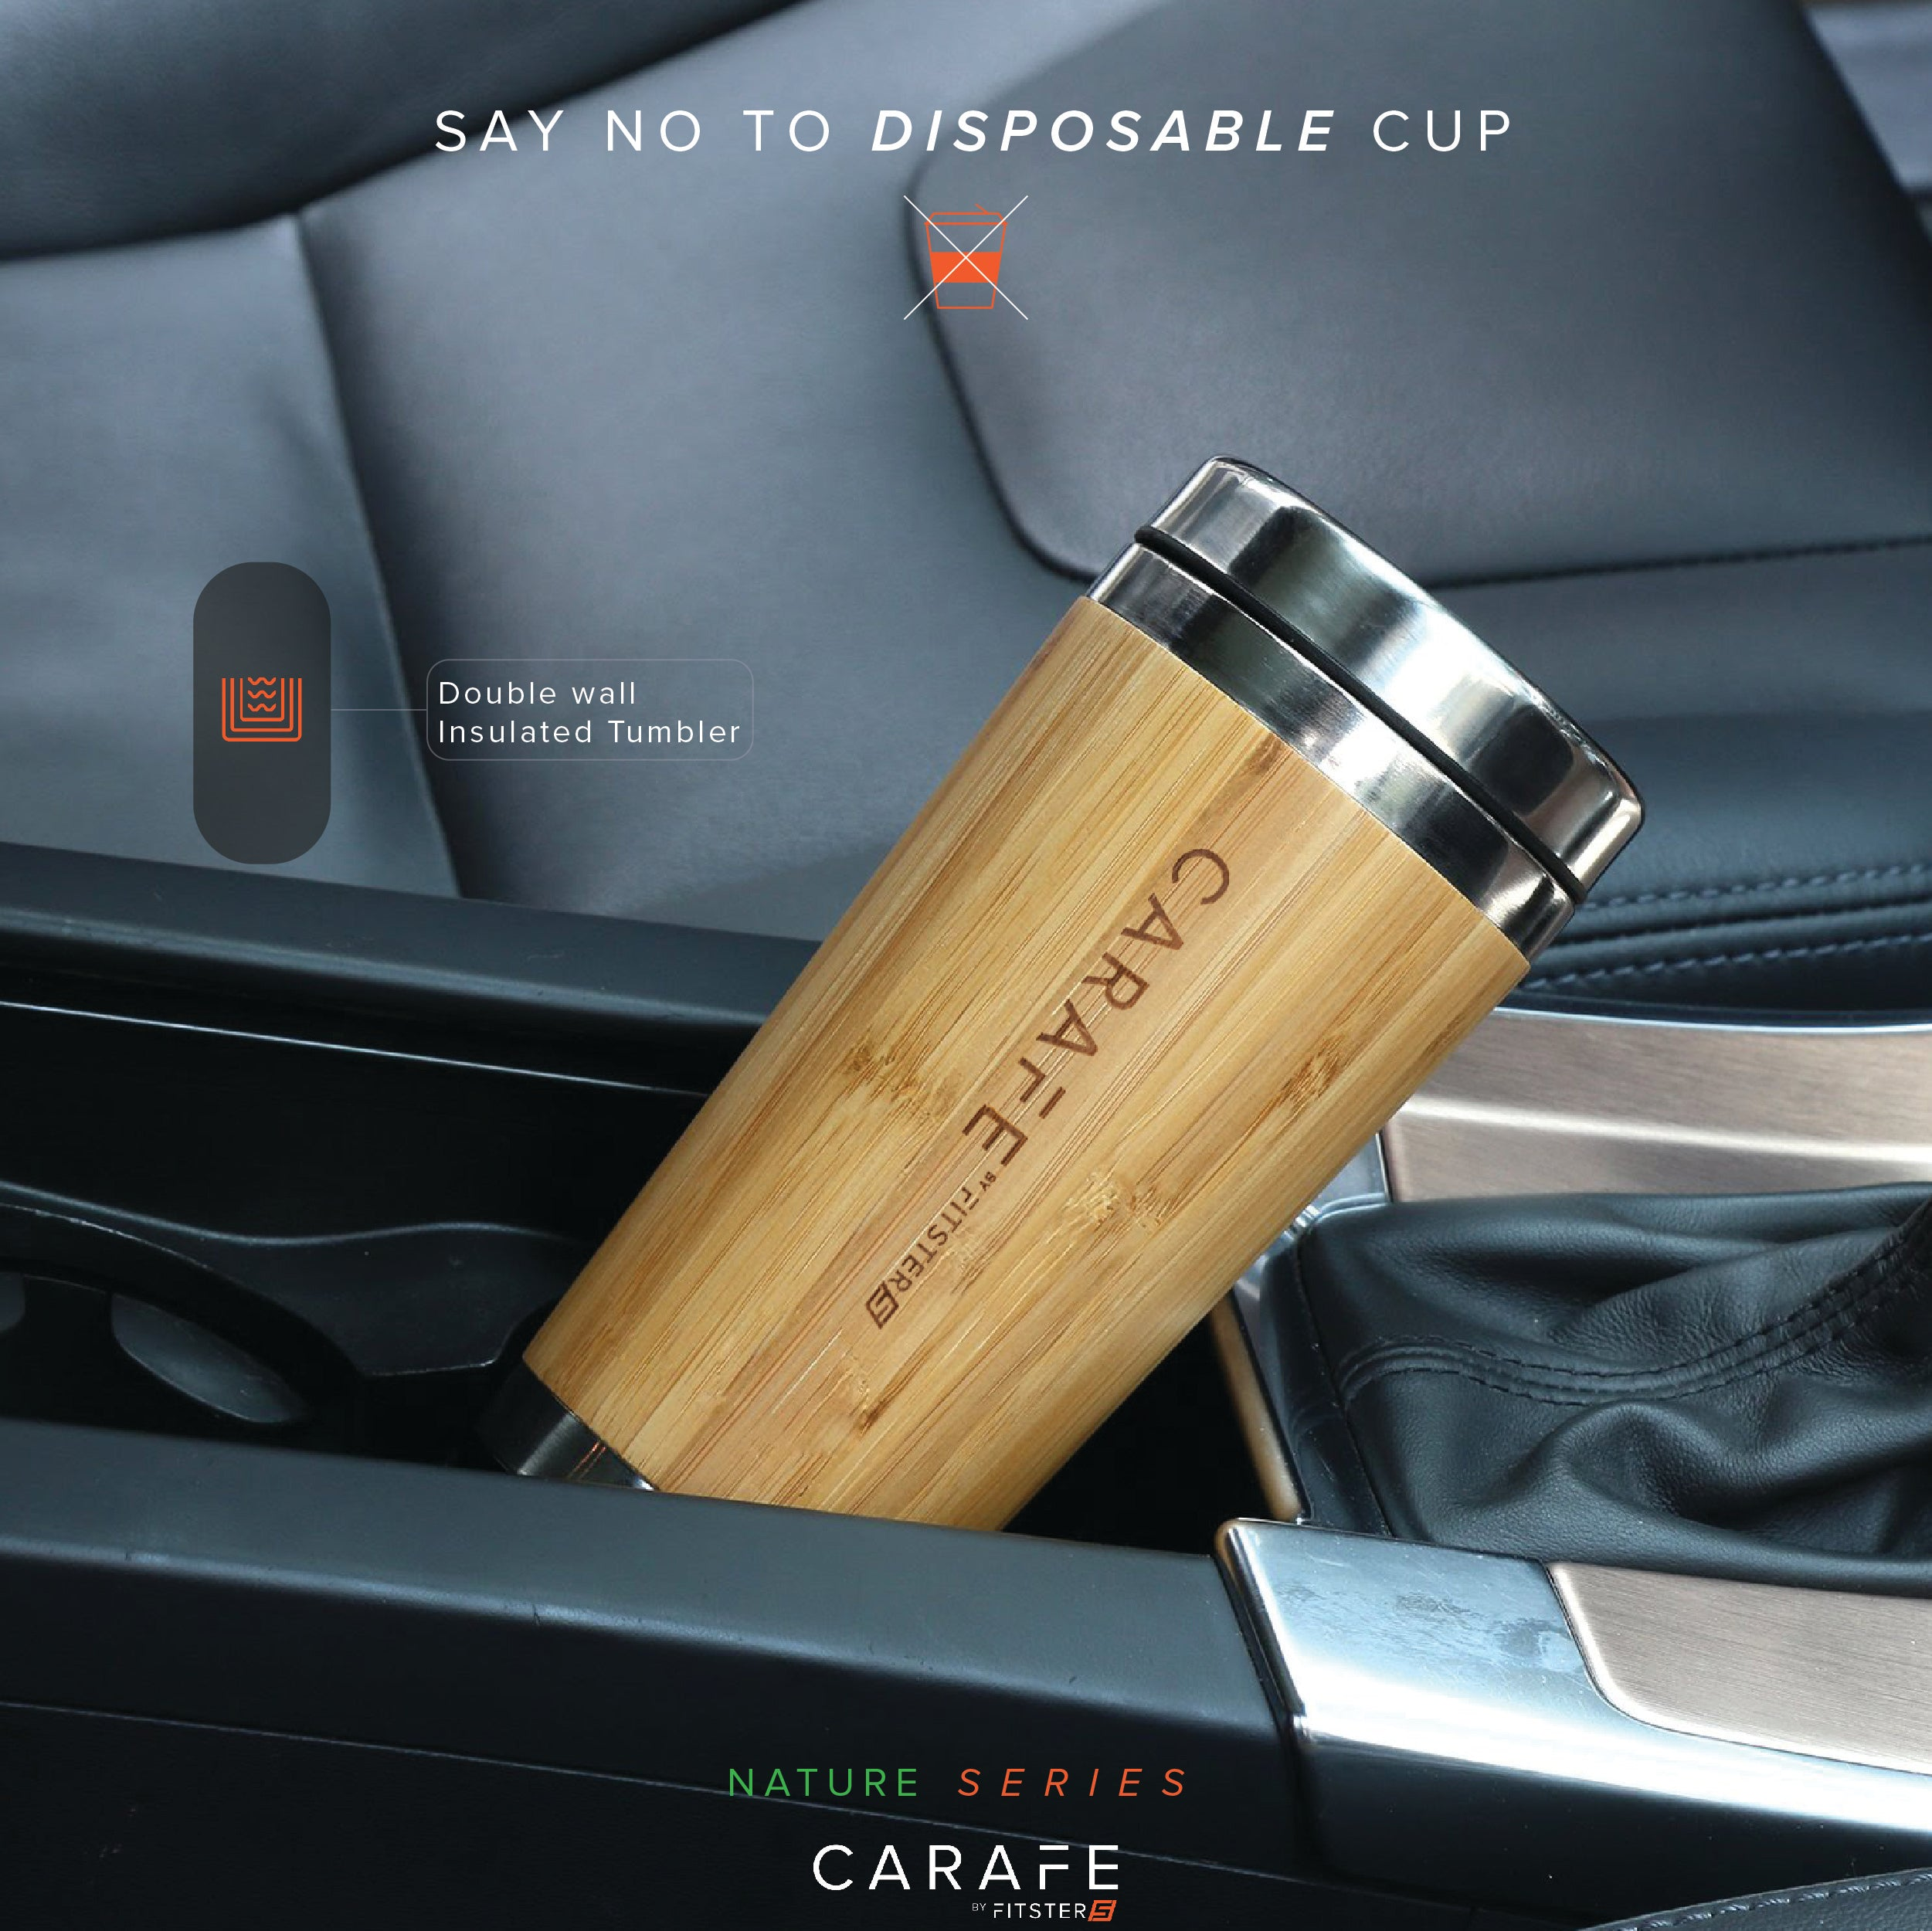 Bamboo Tumbler - Eco friendly, Stainless Steel, Double Walled Insulated 450 ml